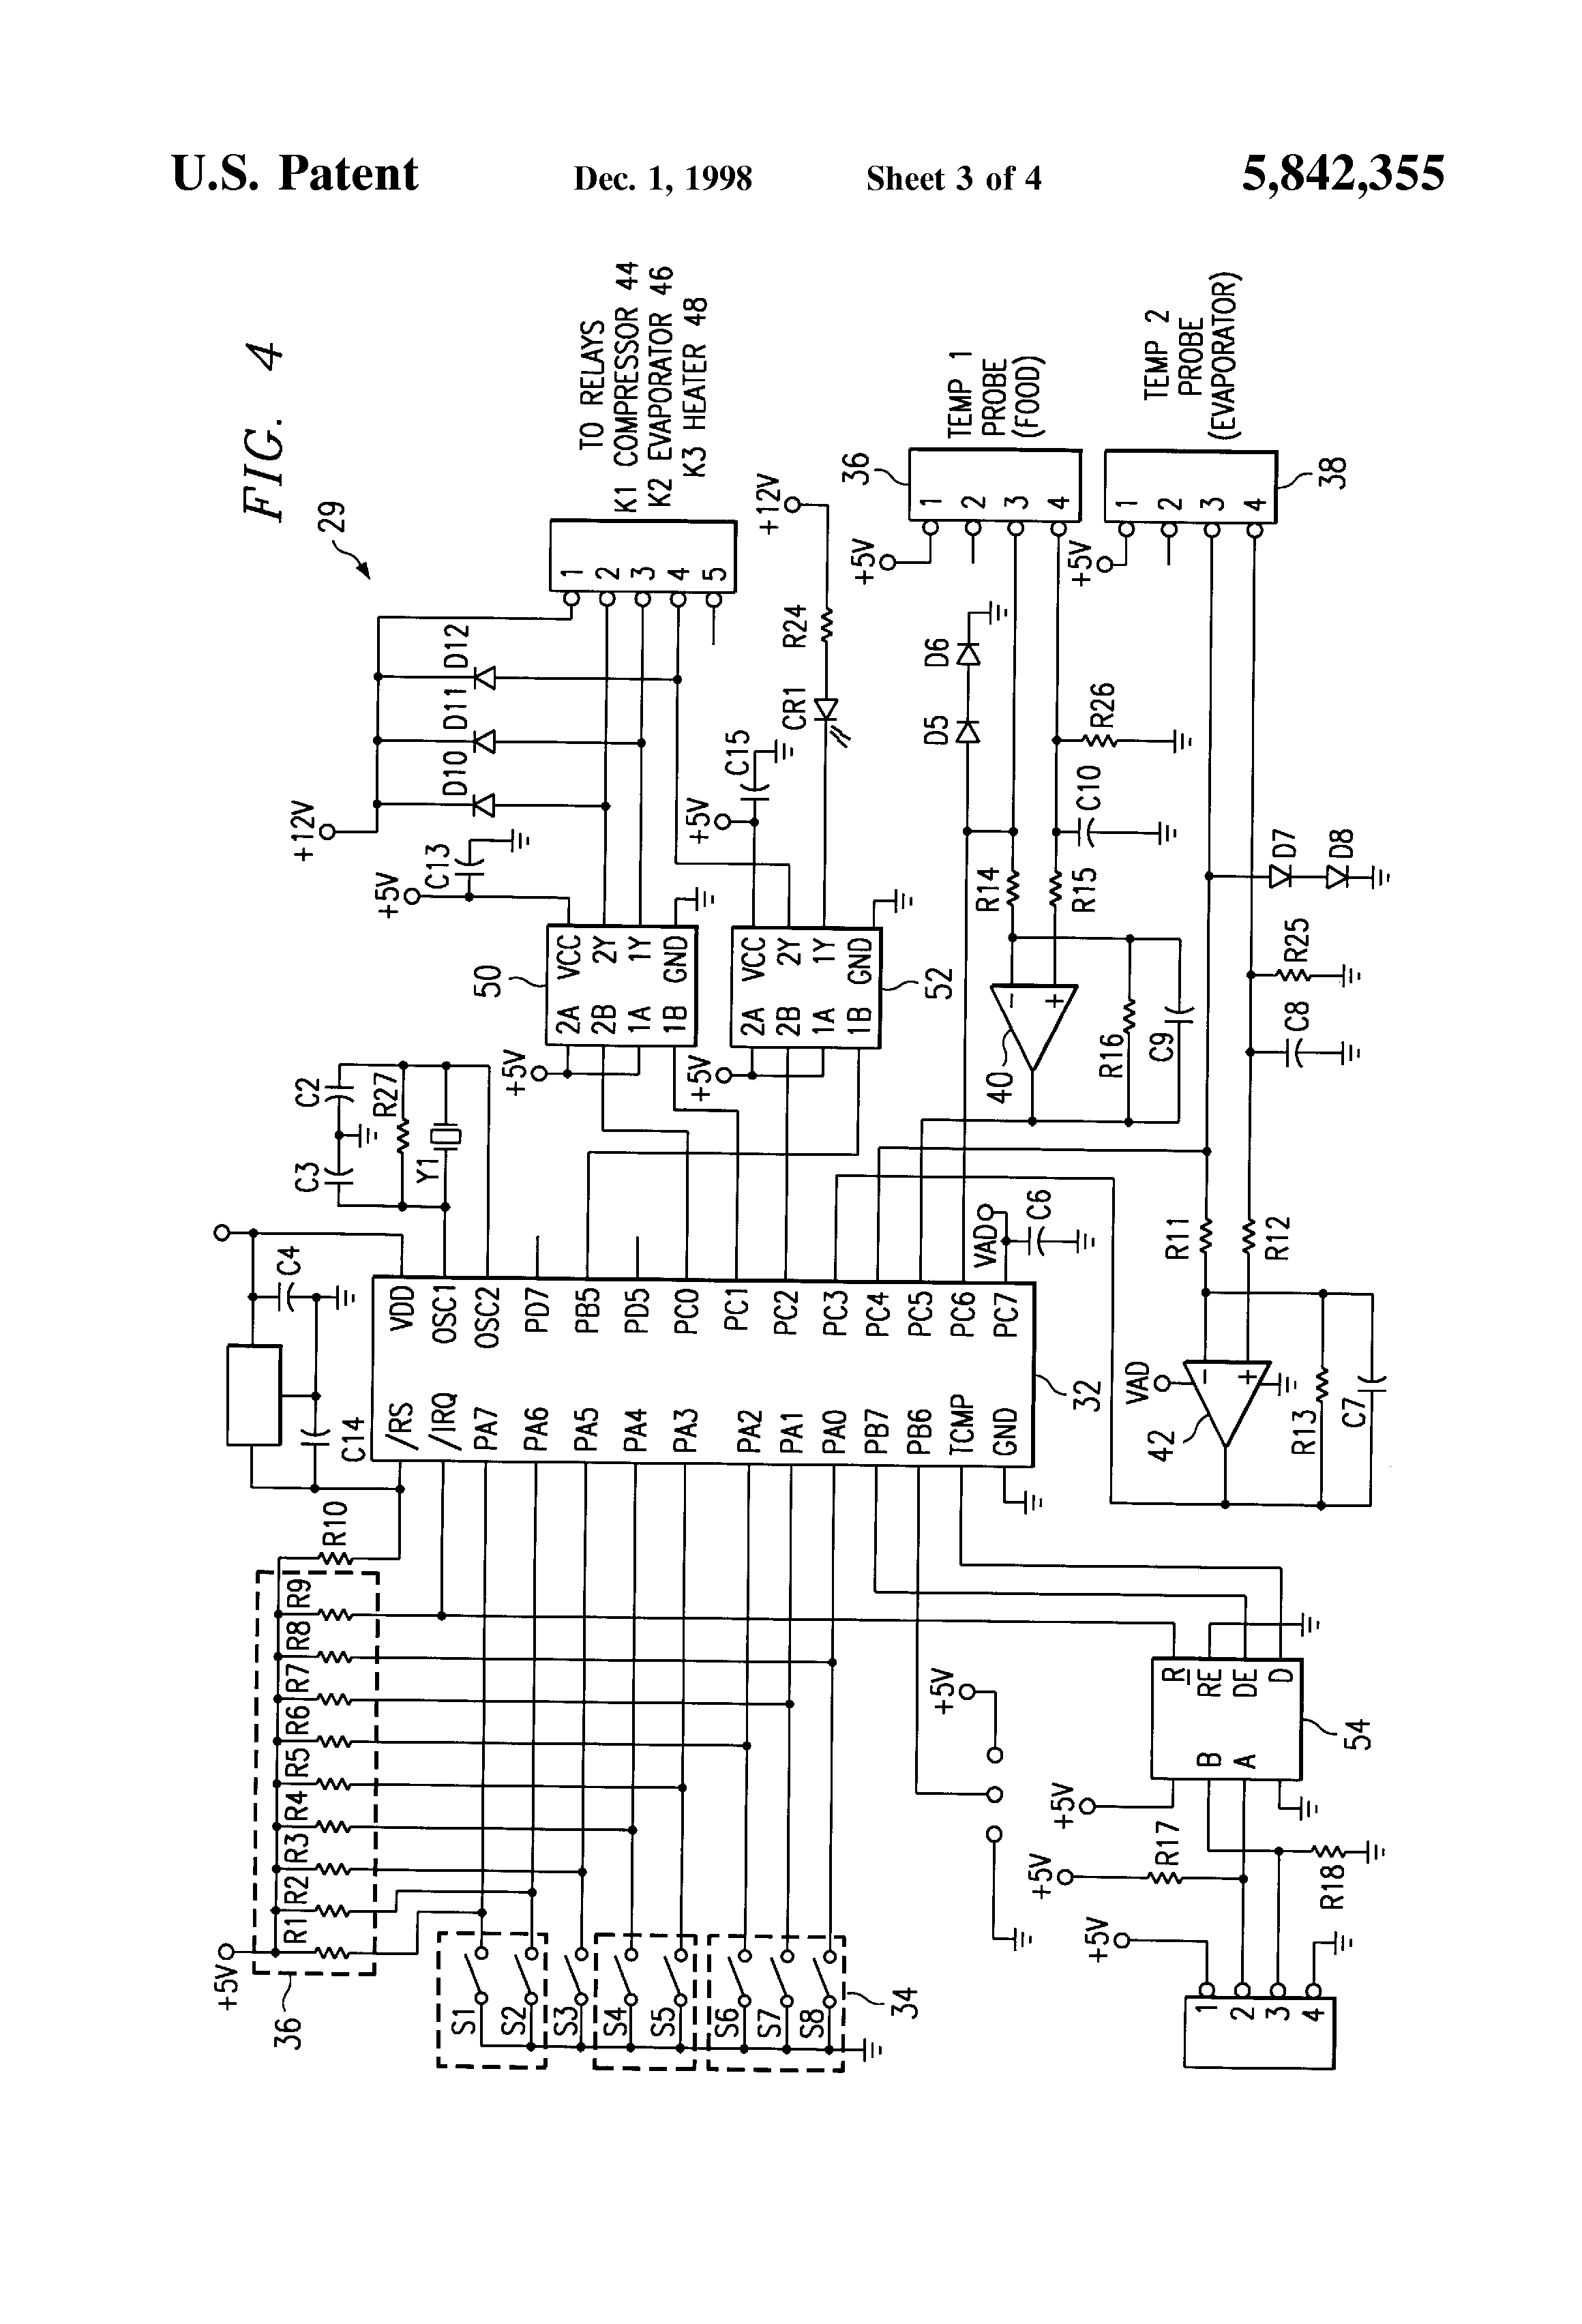 Patent Us5842355 Defrost Control System For A Refrigerator Fig1 Wiring Diagram Typical Fridge Compressor Note The Over Drawing